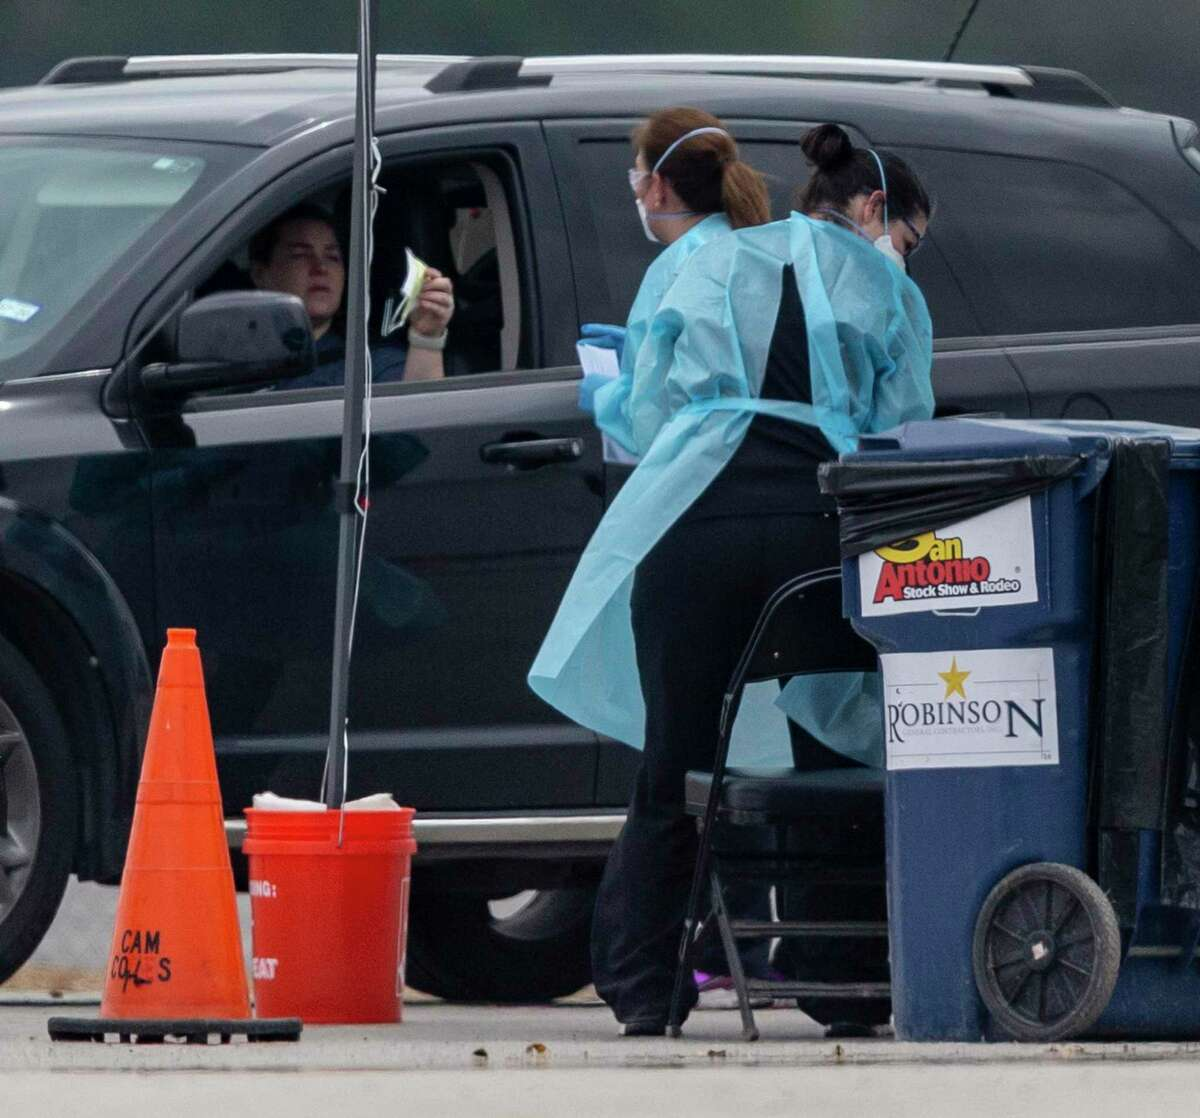 Testing for the novel coronavirus continues at a drive-up facility at Freeman Coliseum in San Antonio, bringing to light more diagnoses of the infection. As of March 26, four people in Bexar County have died of illnesses related to the virus.